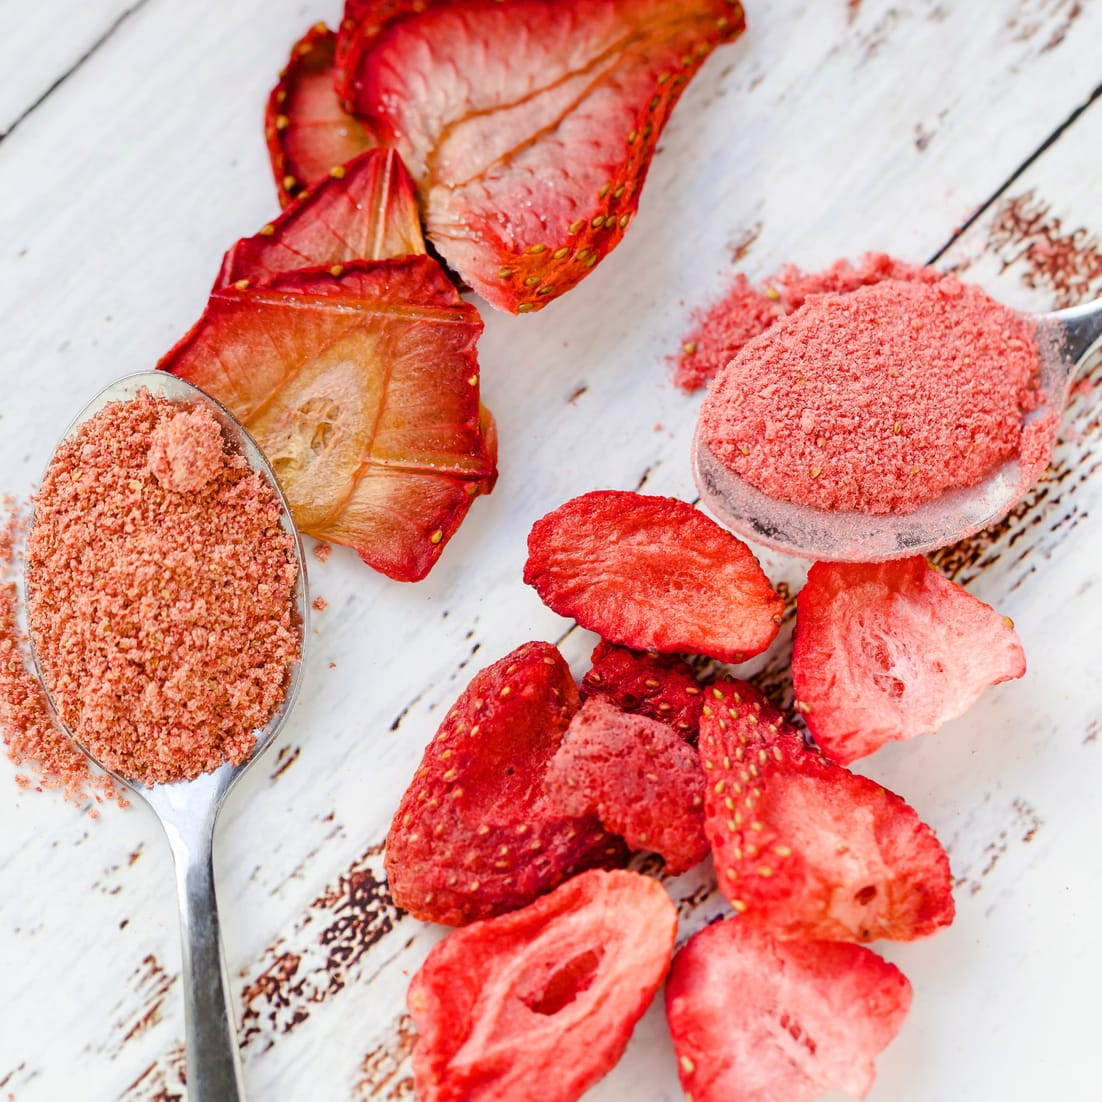 Keto strawberry powder made from fresh strawberries compared to freeze dried strawberries